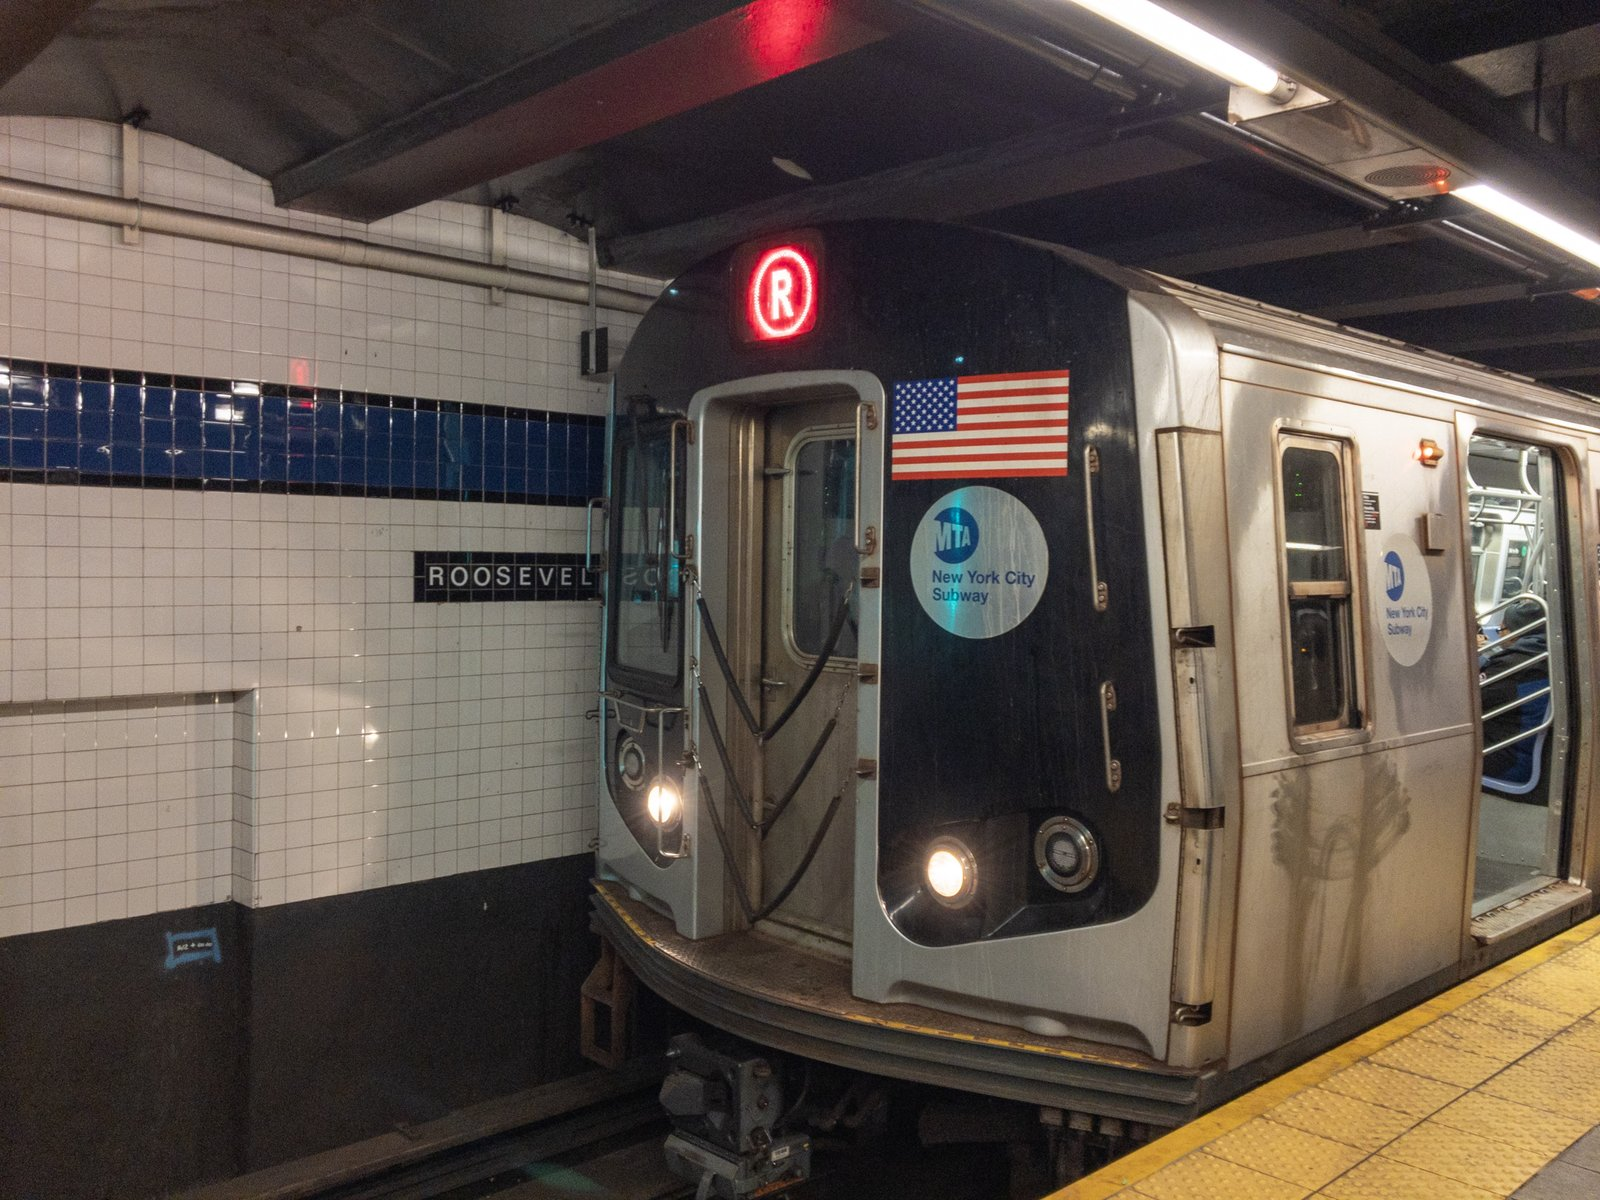 R160 R Train at Roosevelt Av - Rapid Transit Gallery - NYC